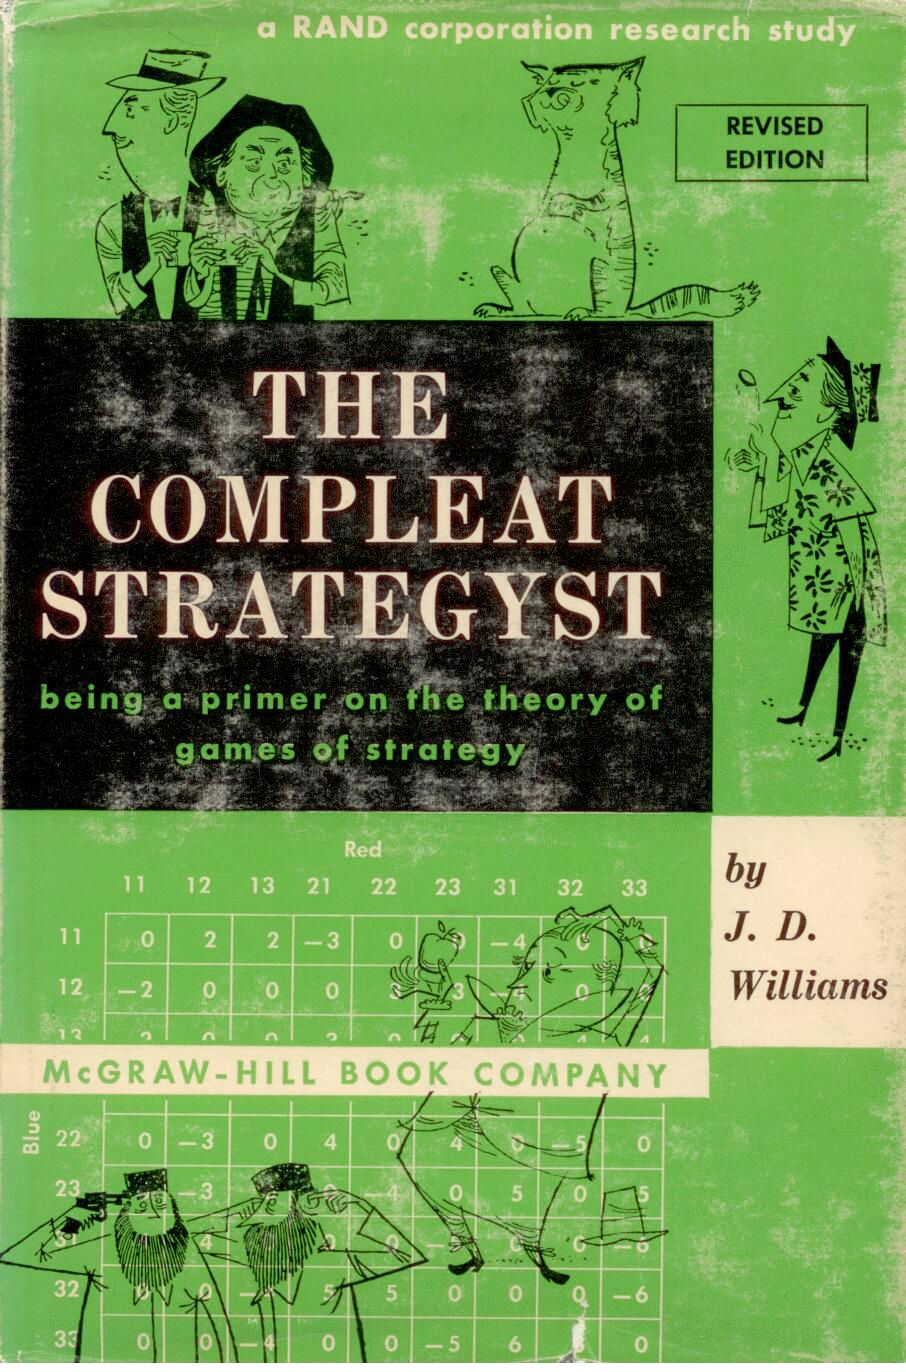 The Compleat Strategyst (Complete Strategist)